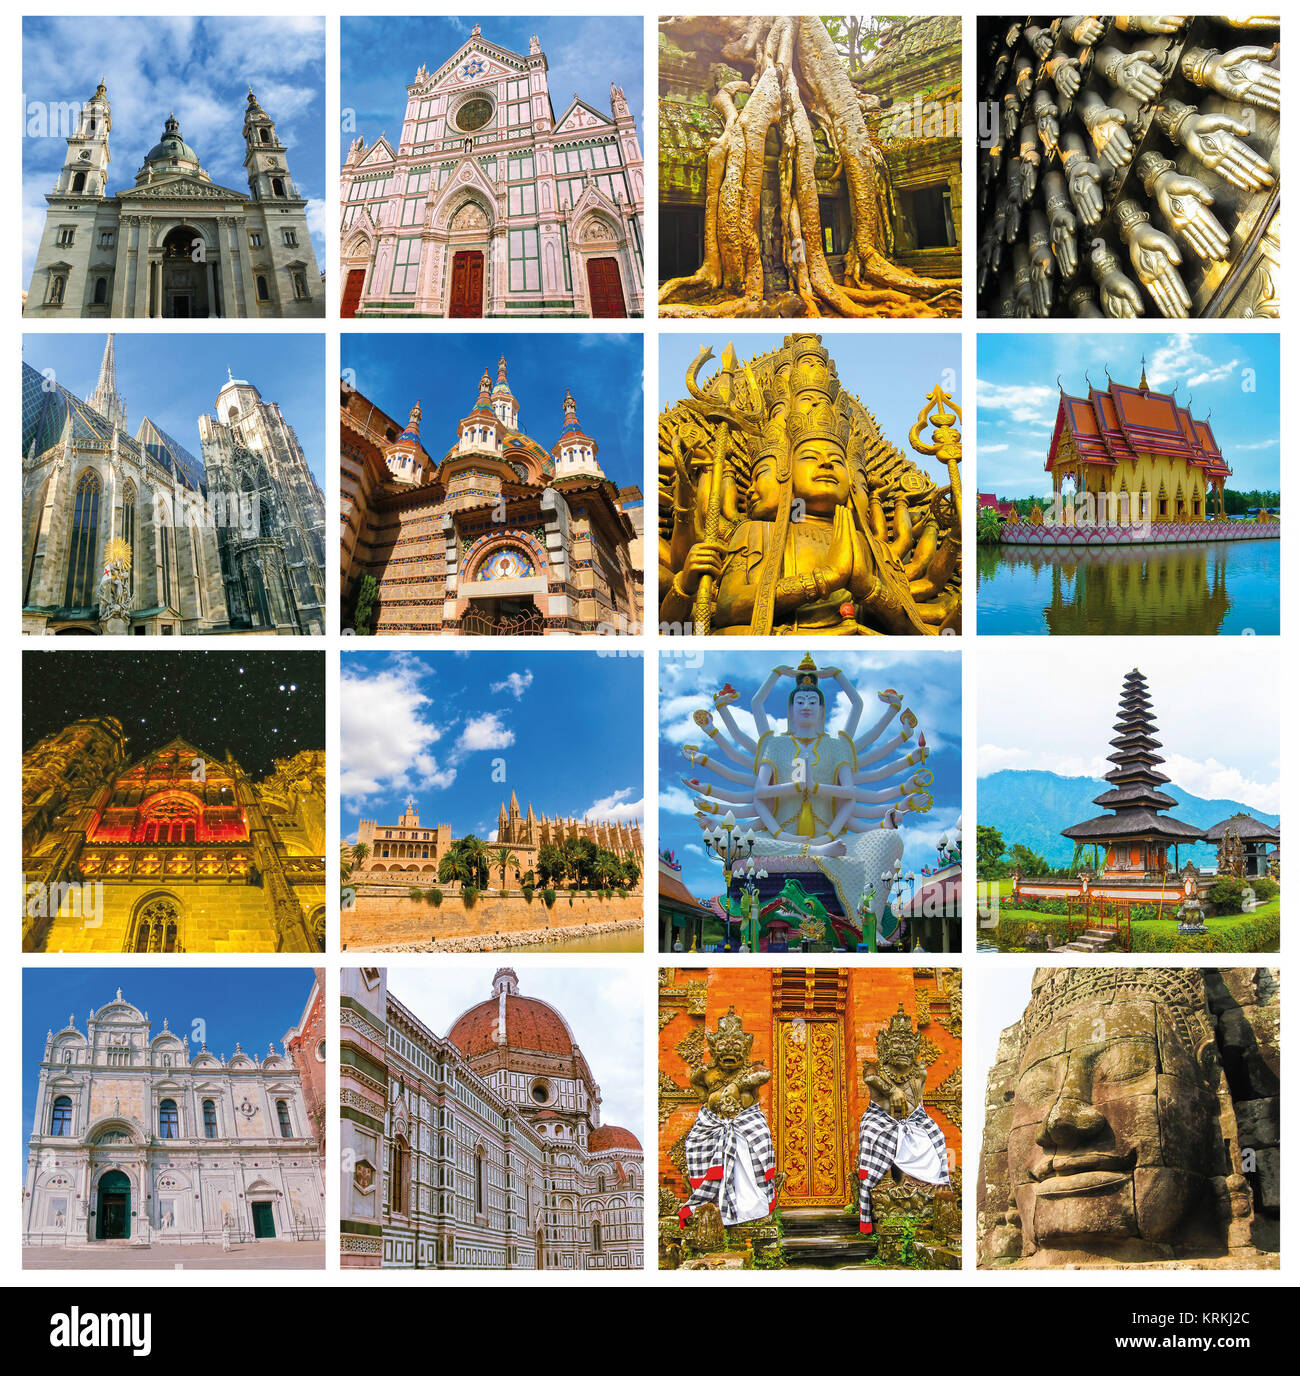 Collage Tourism Travel Planet Earth Stock Photos & Collage Tourism ...